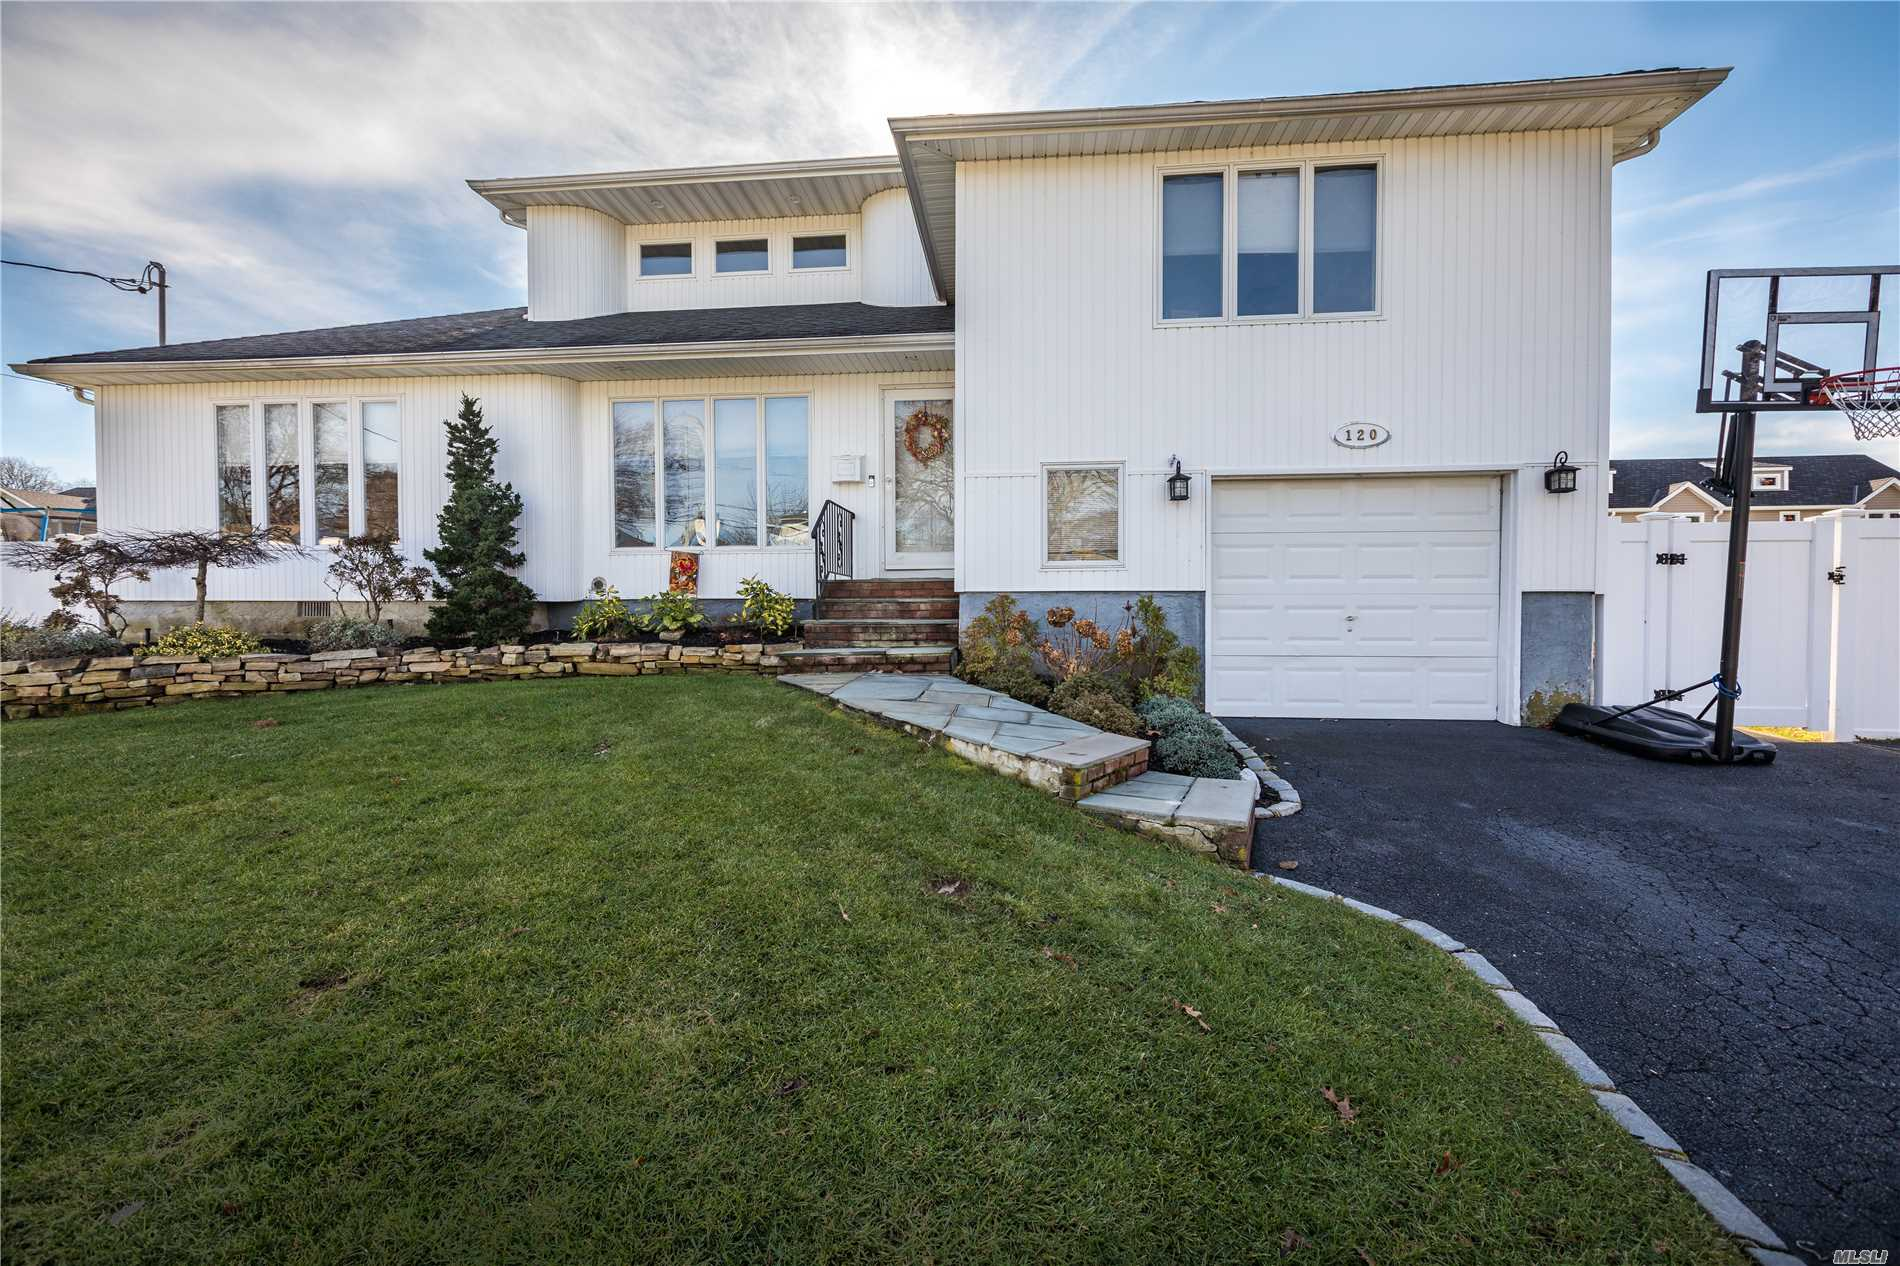 This Is The One You Have Been Waiting For! Massive Family Room, Updated Eik With Granite Counter Tops, Master Bedroom With Ensuite Mbath, New Navien Boiler, Cac, Large 80X100 Property & Has Plenty Of Room For Mom. Too Much To List. Come See For Yourself!